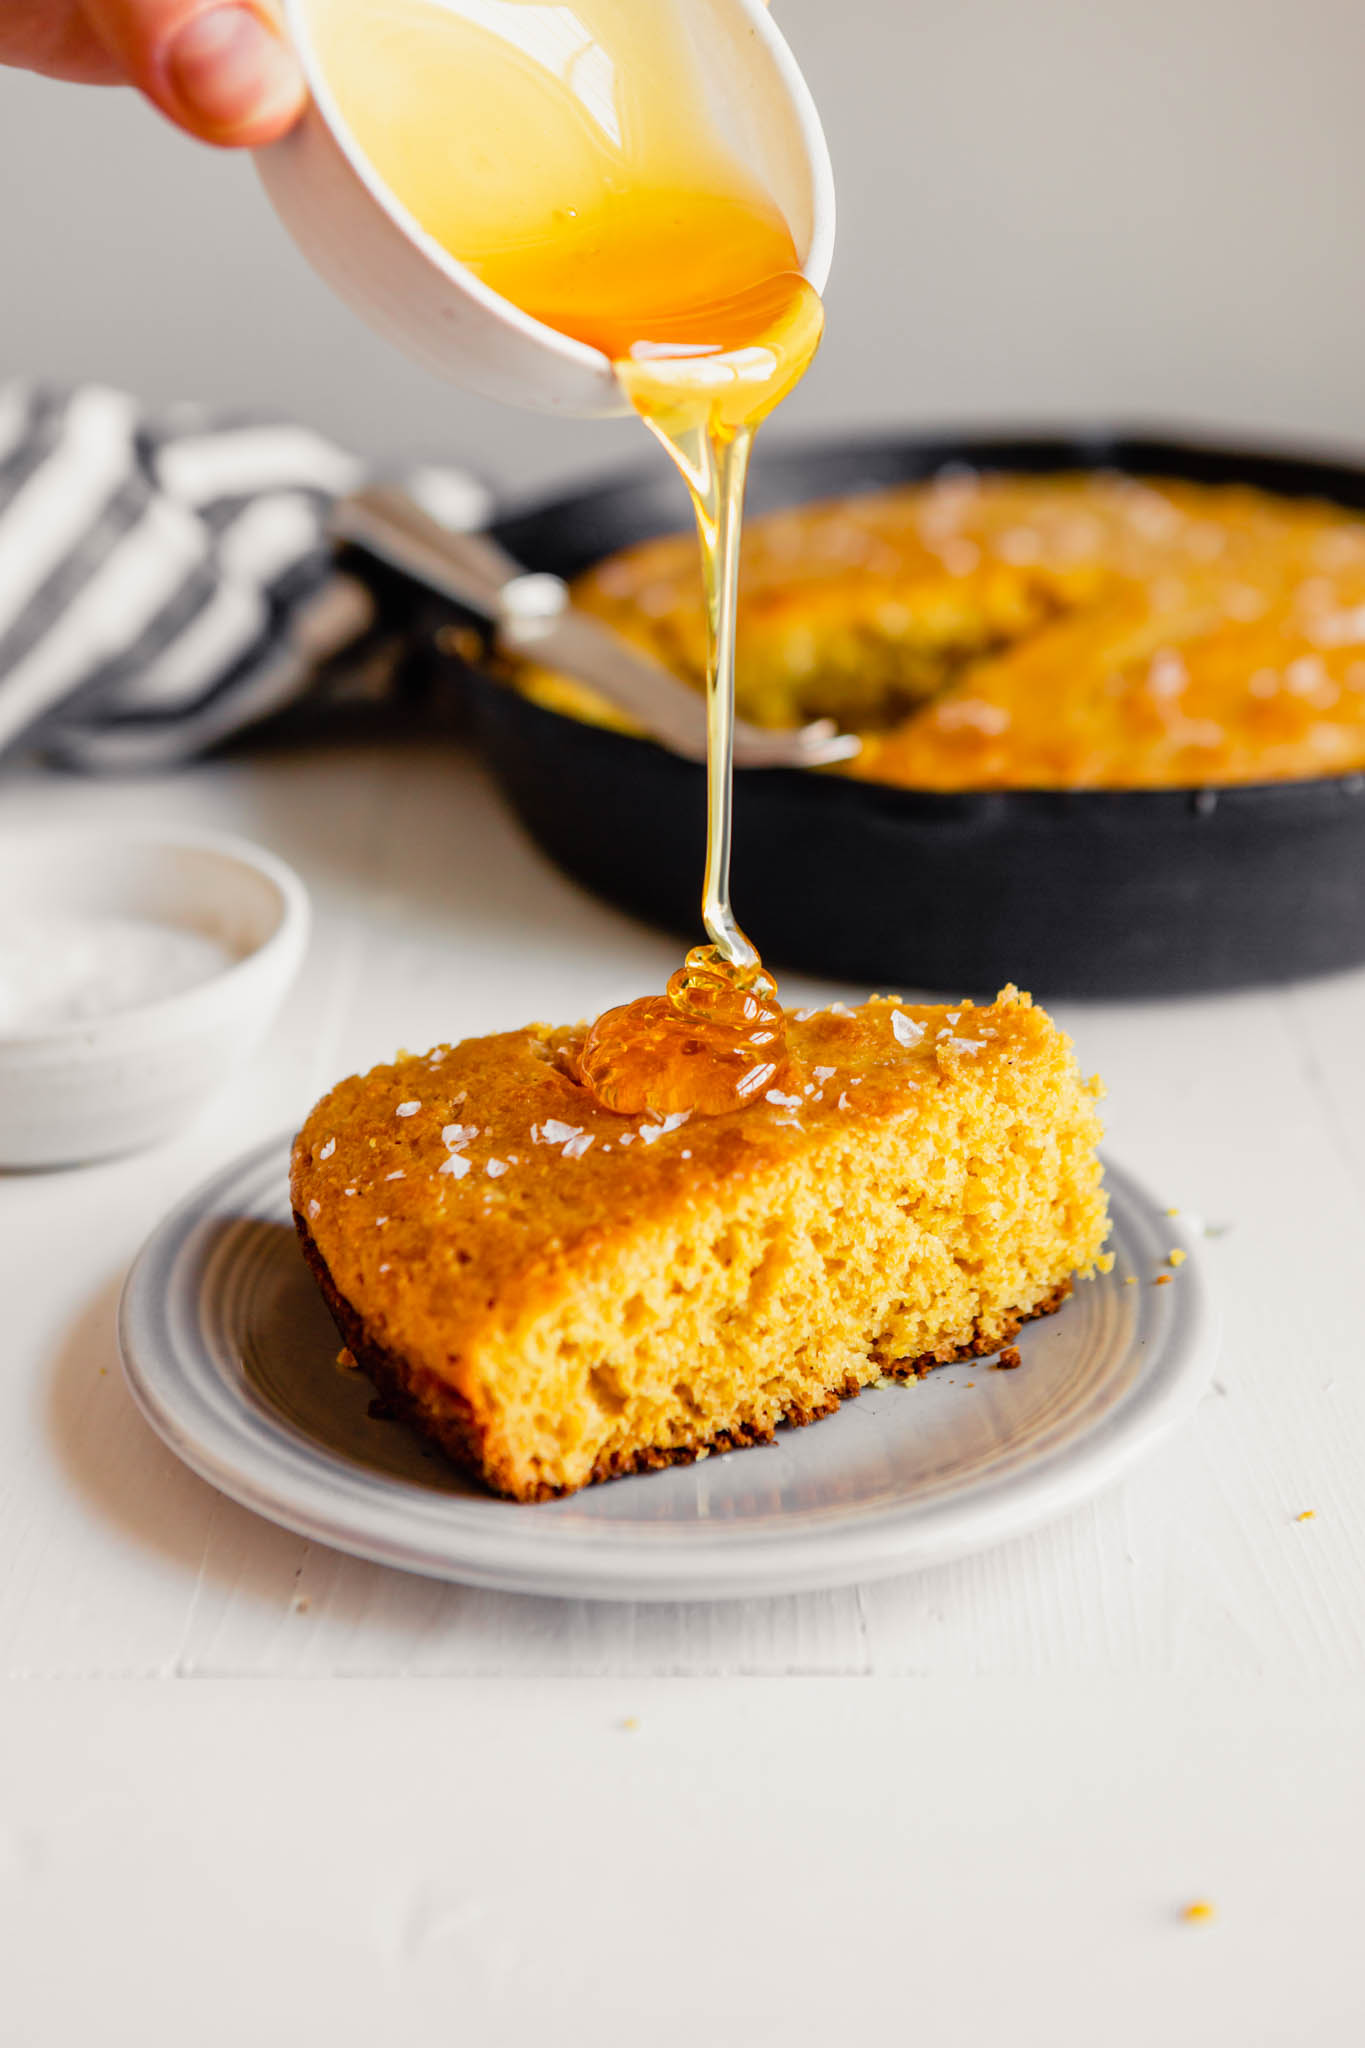 Side angle of a wedge of healthy cornbread with honey being drizzled over it